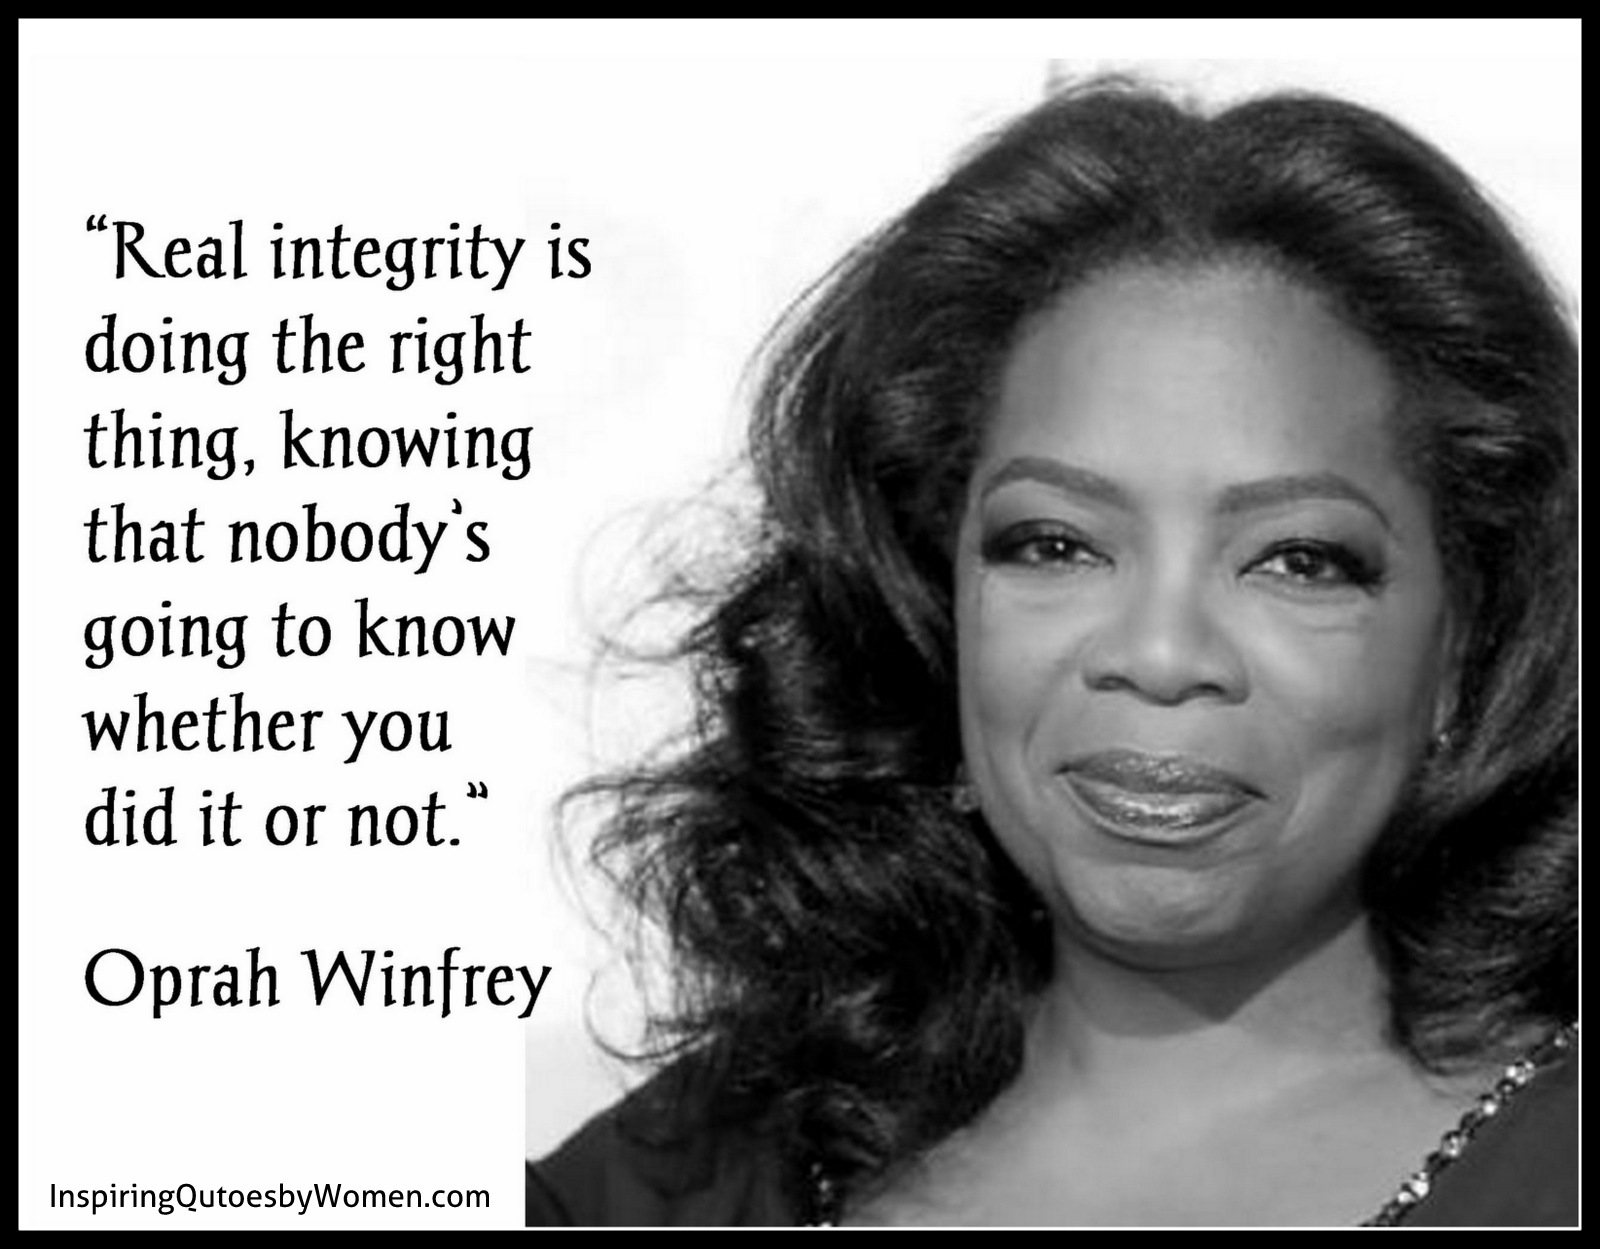 essay on oprah winfrey is a leader Essays - largest database of quality sample essays and research papers on oprah winfrey as a leader.